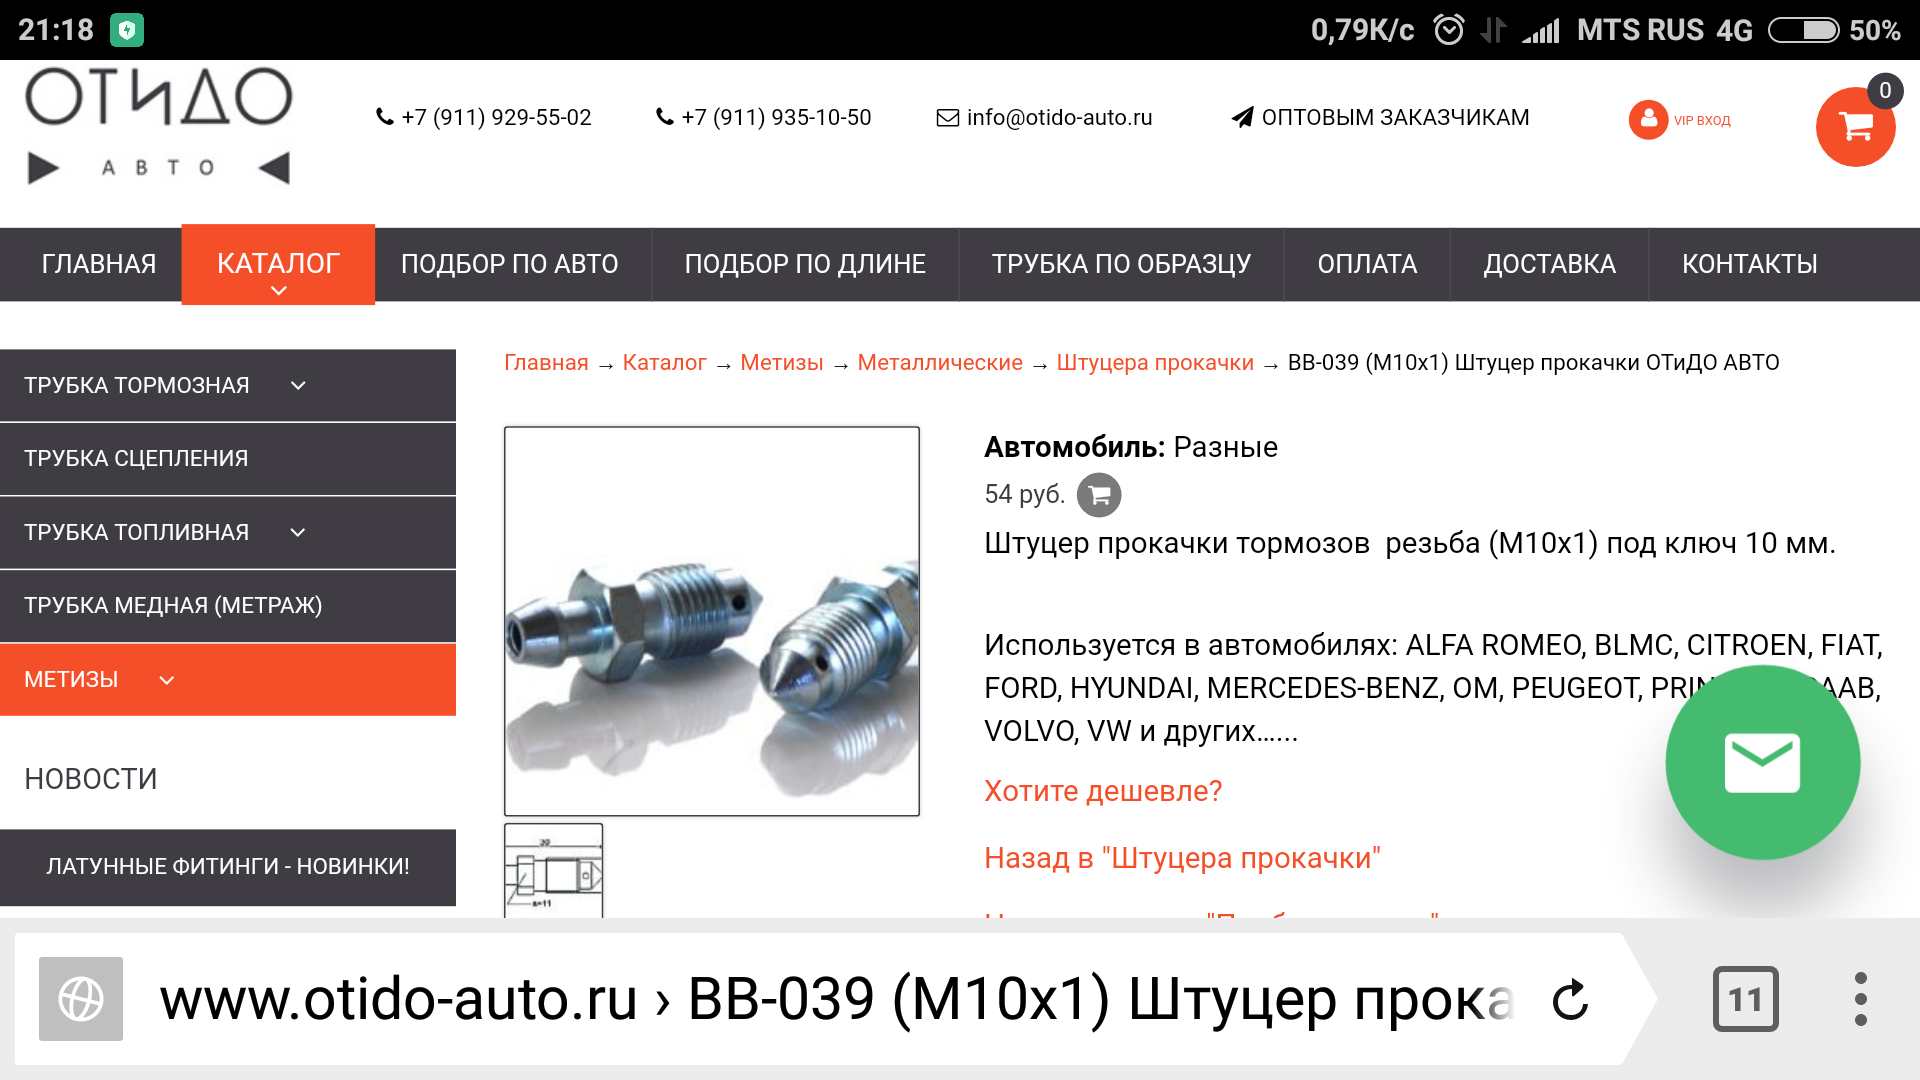 Screenshot_2018-01-04-21-18-03-347_com.yandex.browser.png